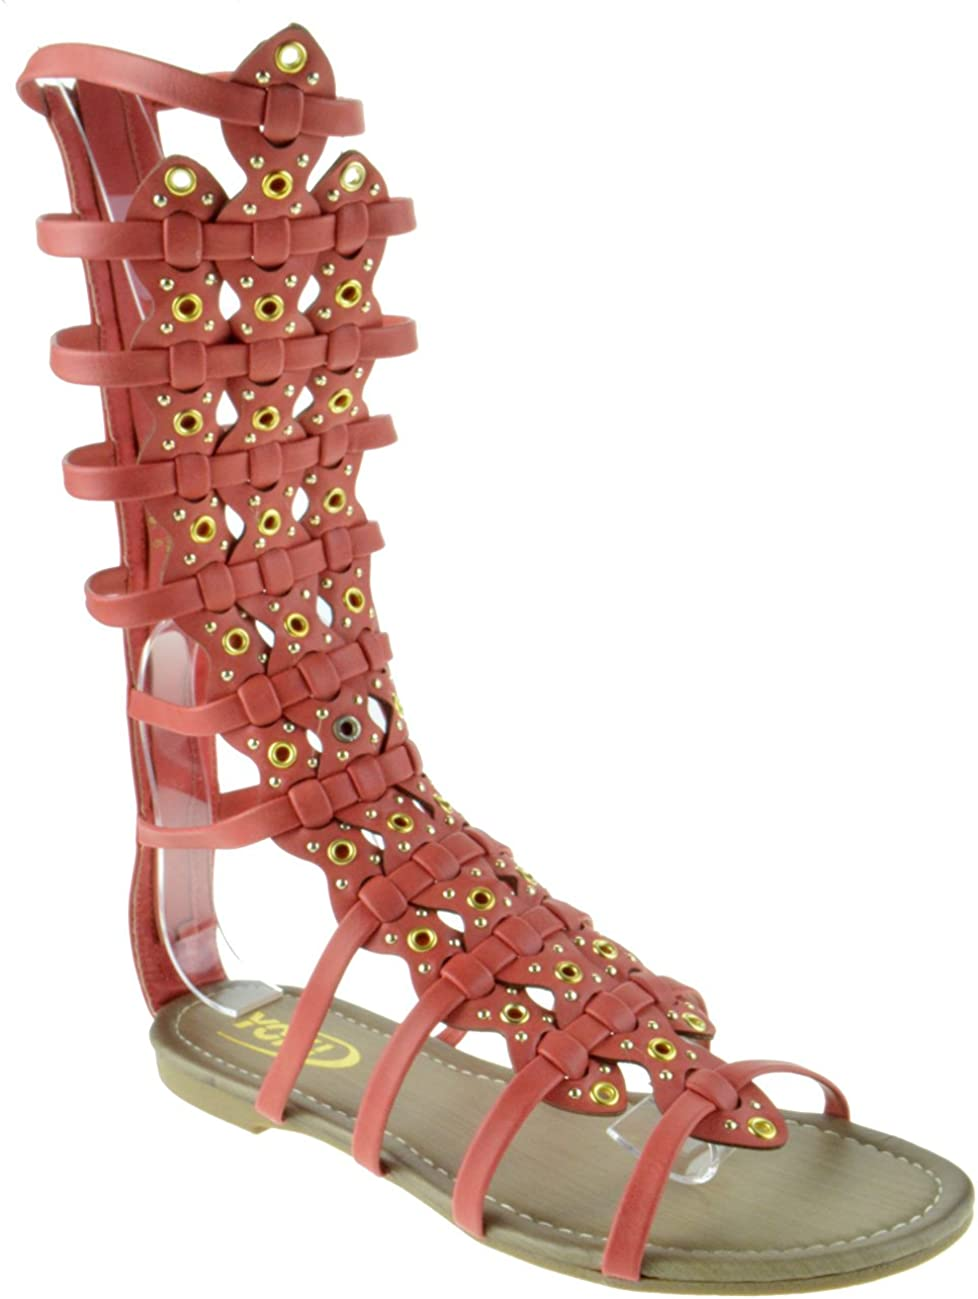 Forvever Myra 2 Max 80% OFF Cheap mail order specialty store Womens Mid Calf Strappy Gladiator San Caged Flat